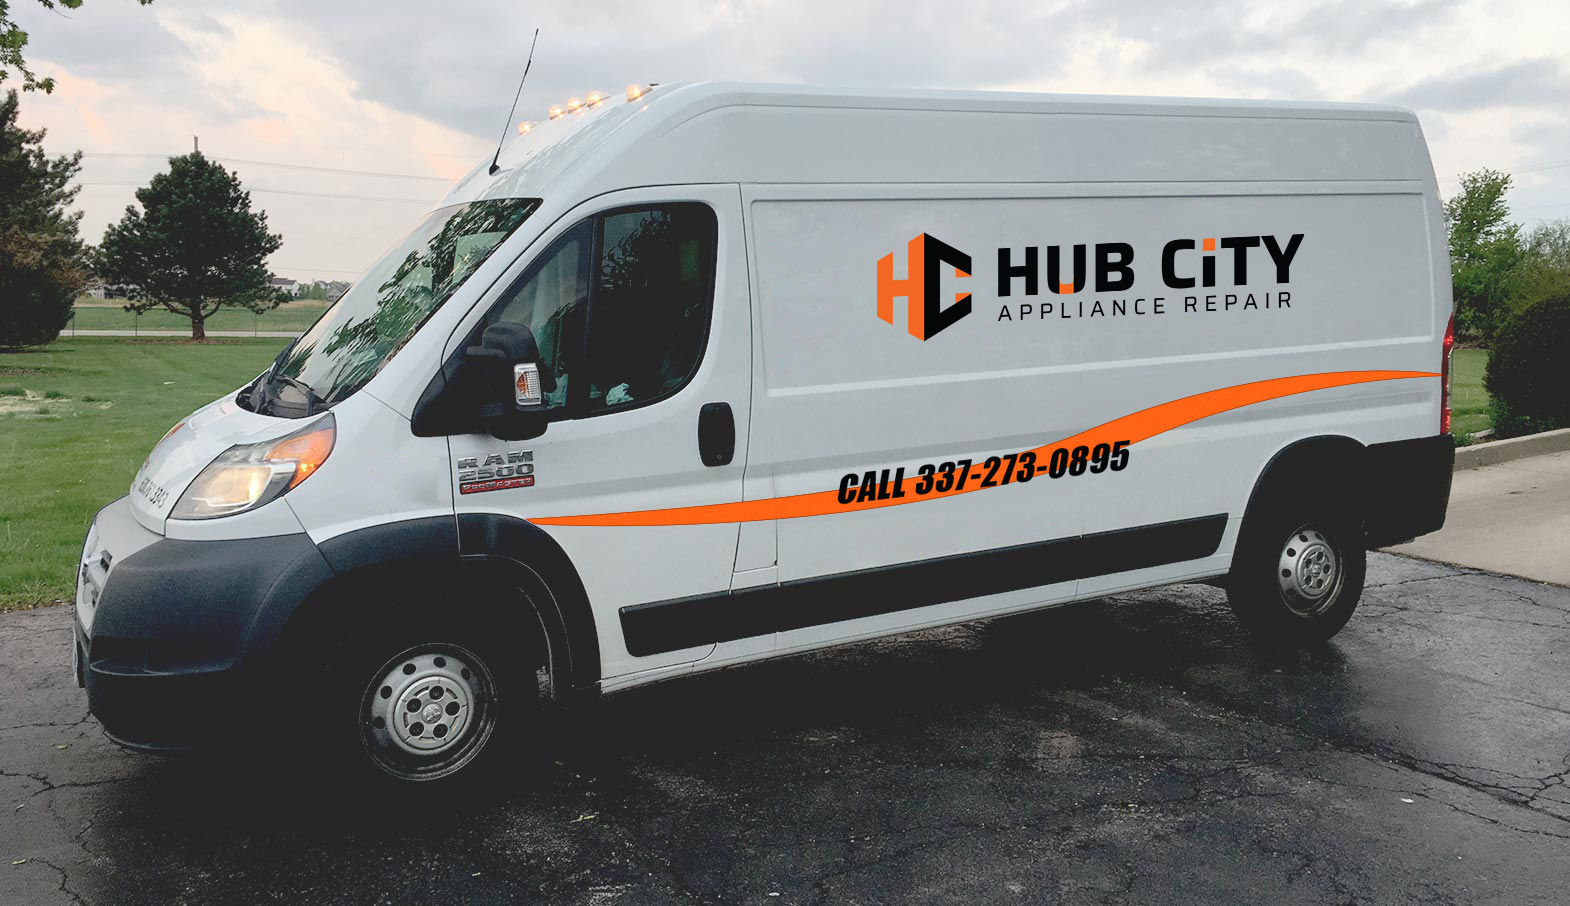 hub city appliance repair van